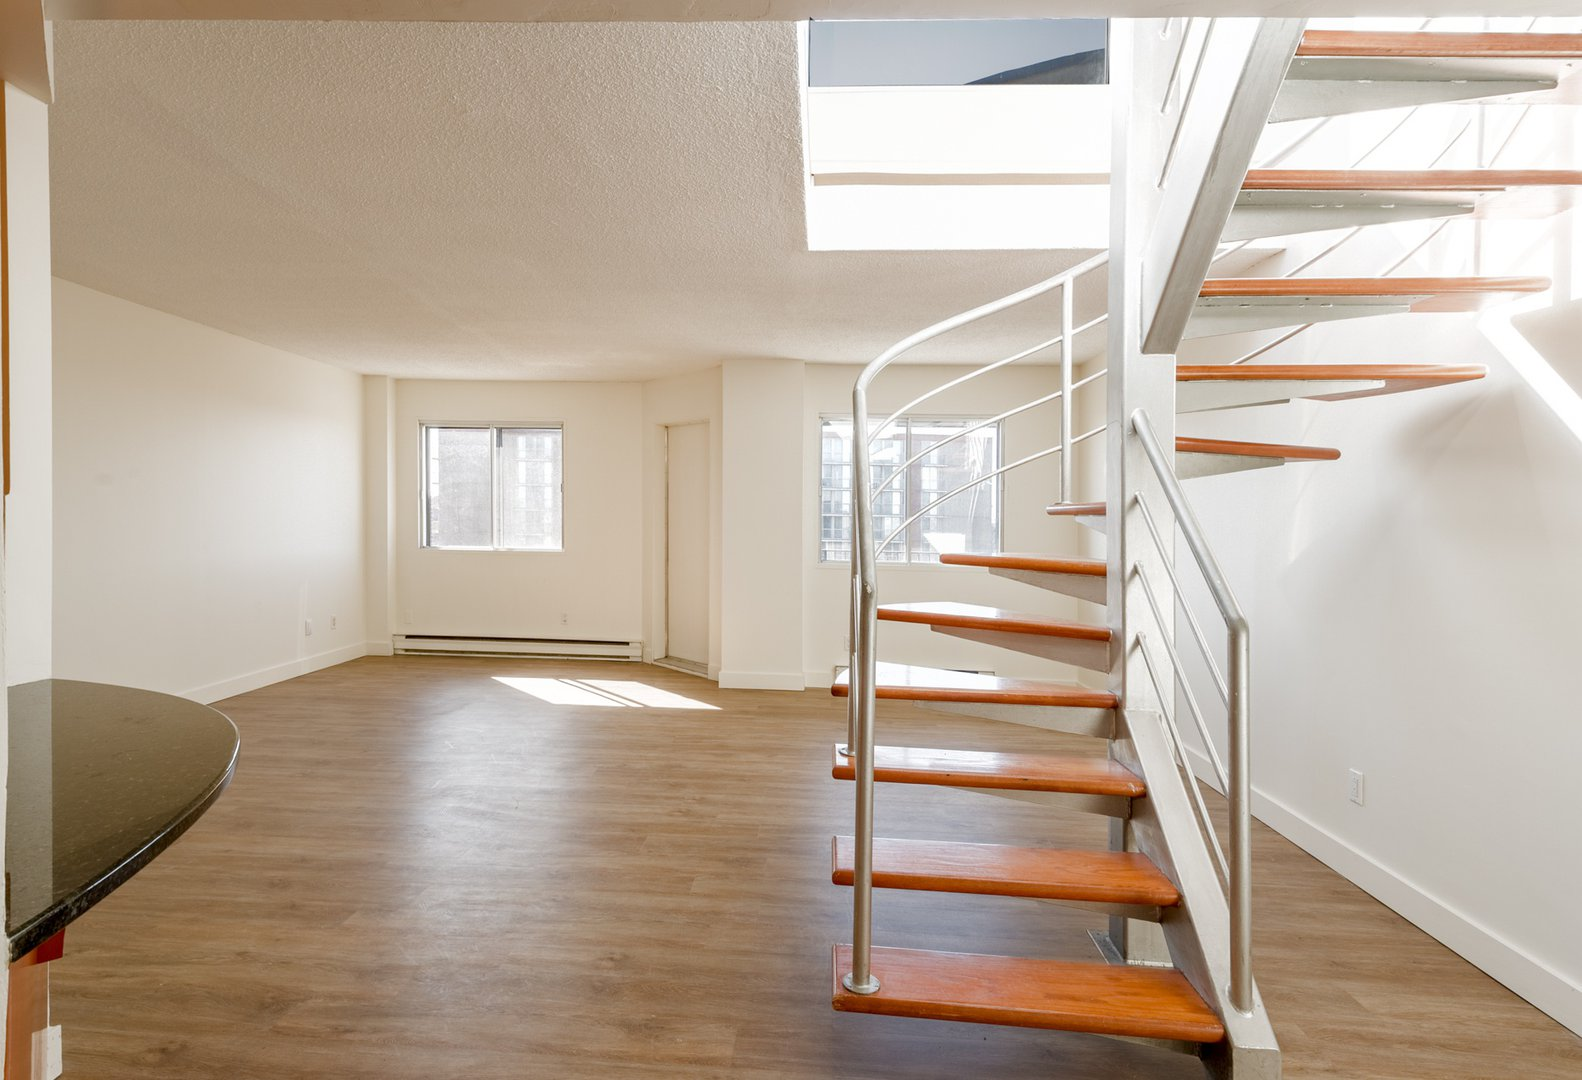 High-Rise Apartment for rent at 50 Quintin, suite 111, Ville Saint-Laurent, QC. This is the foyer entrance with hardwood floor and natural light.